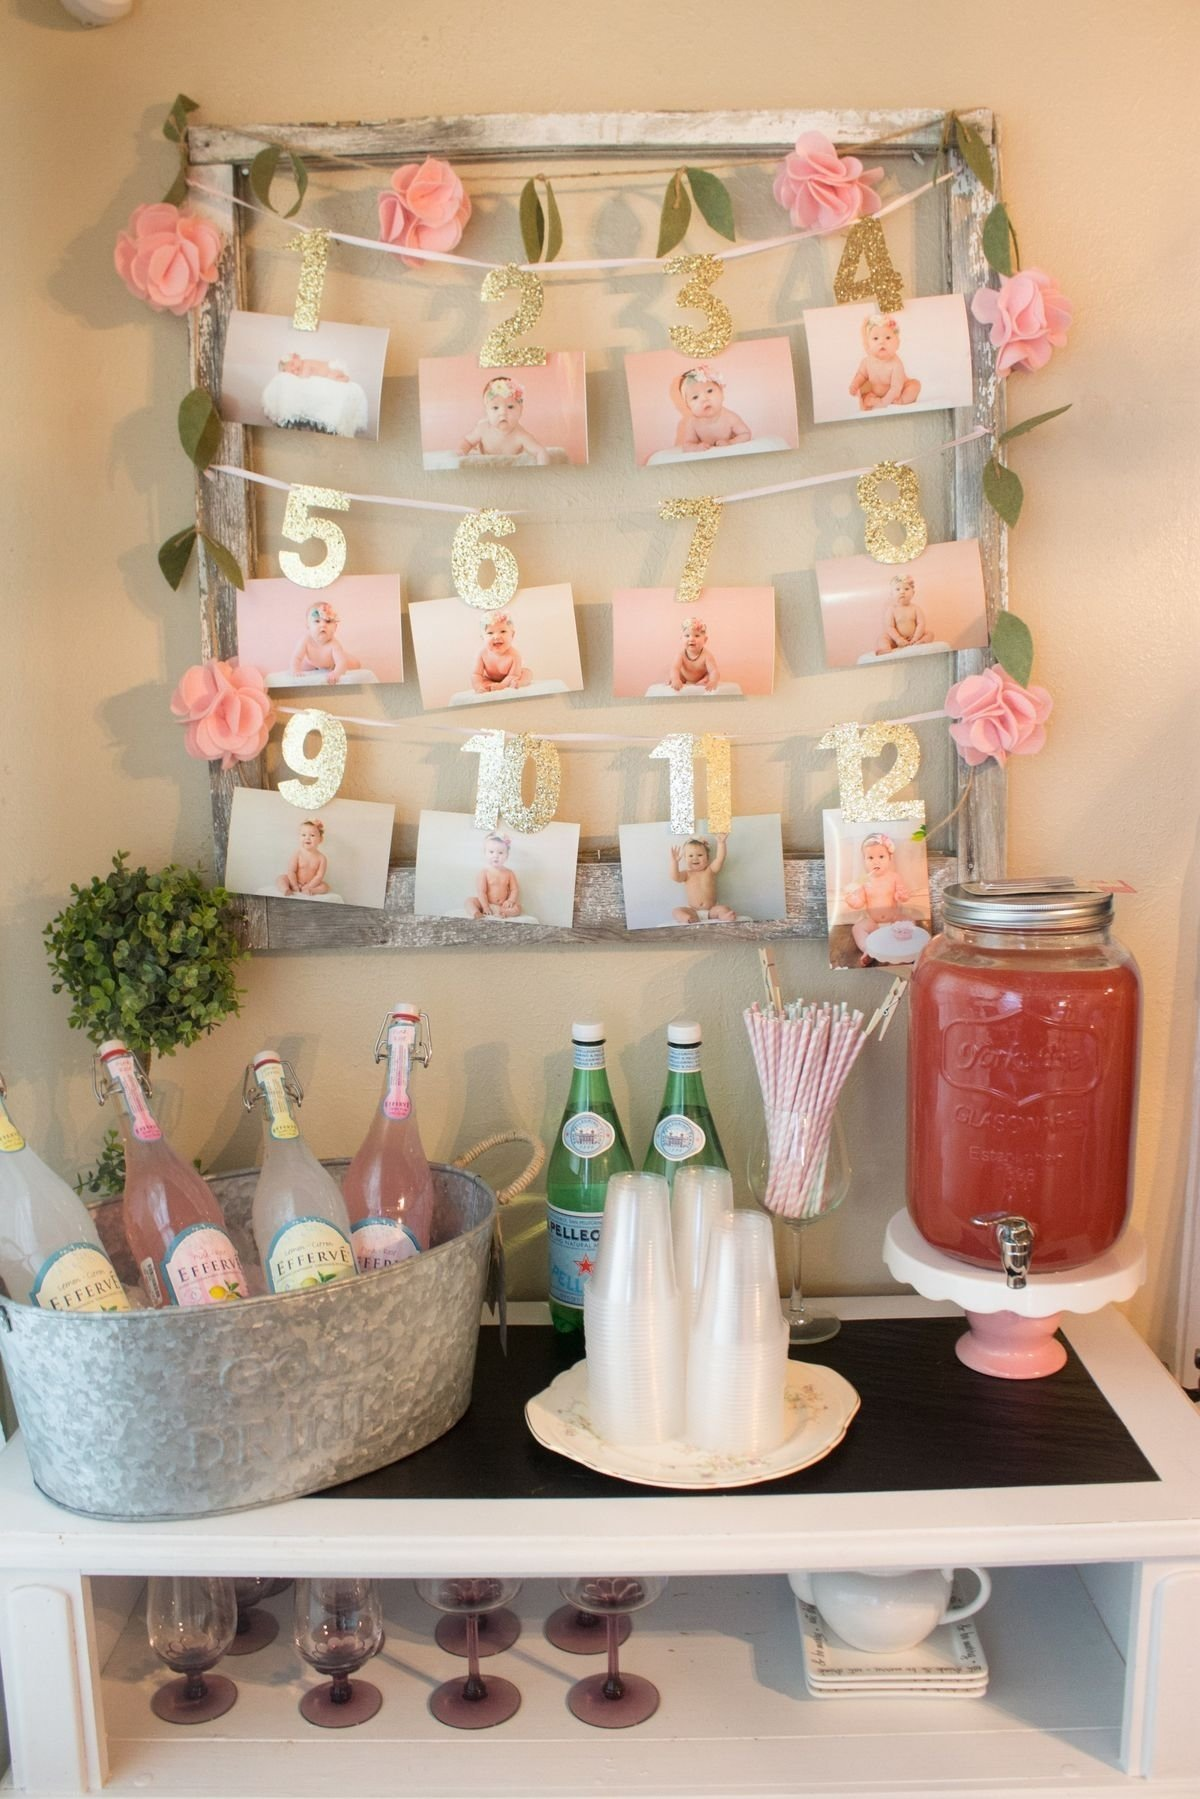 10 Famous One Year Birthday Party Ideas themes birthdayone year old baby birthday party ideas as well as 1 1